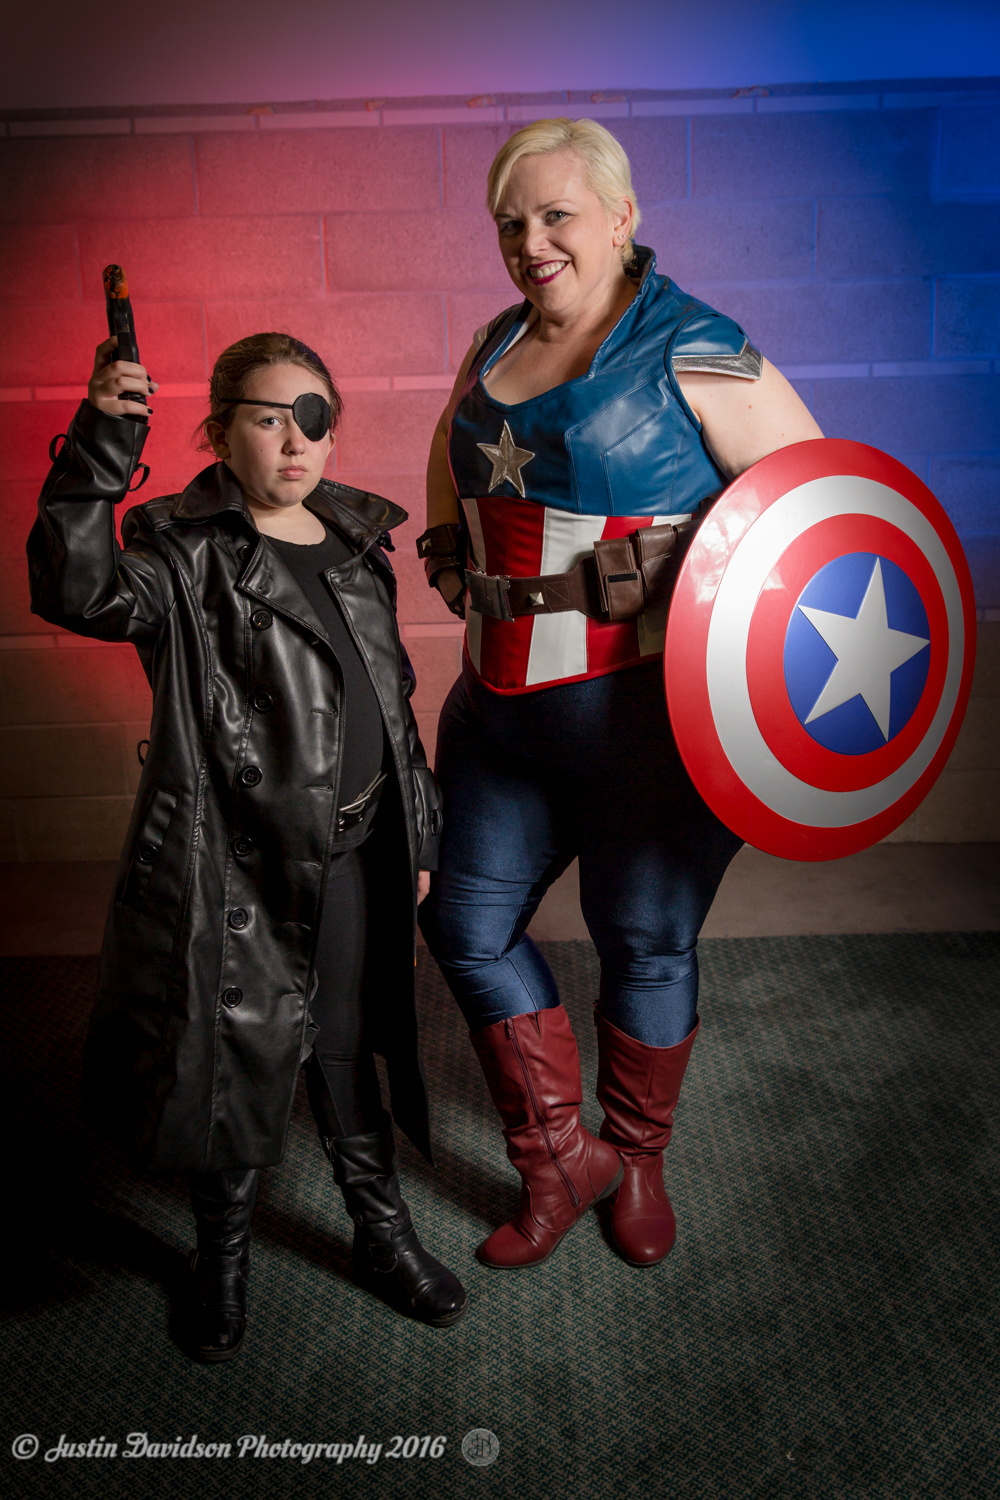 Cosplay: Nick Fury and Captain America